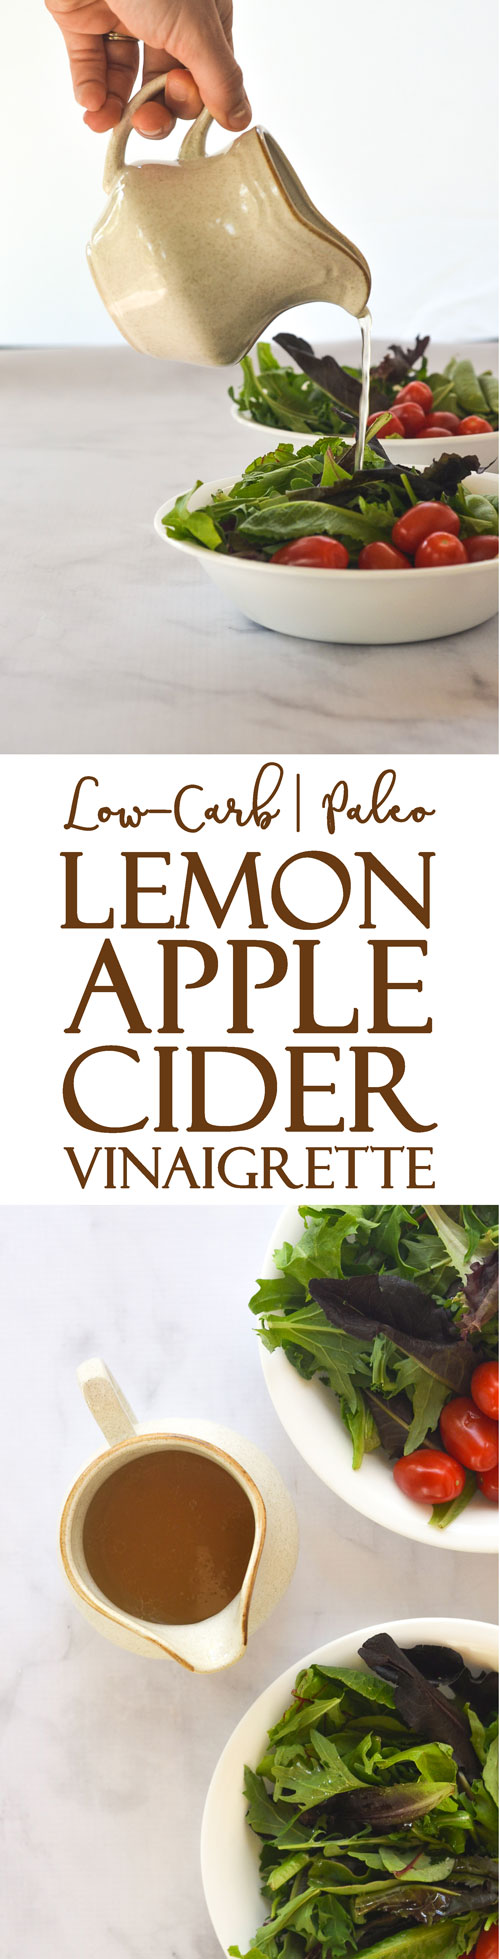 An incredibly simple lemon apple cider vinaigrette. Sweet and tangy, it's a great addition to any salad. Great for those avoiding sugar, who are Paleo, ketogenic, vegan and low-carb.